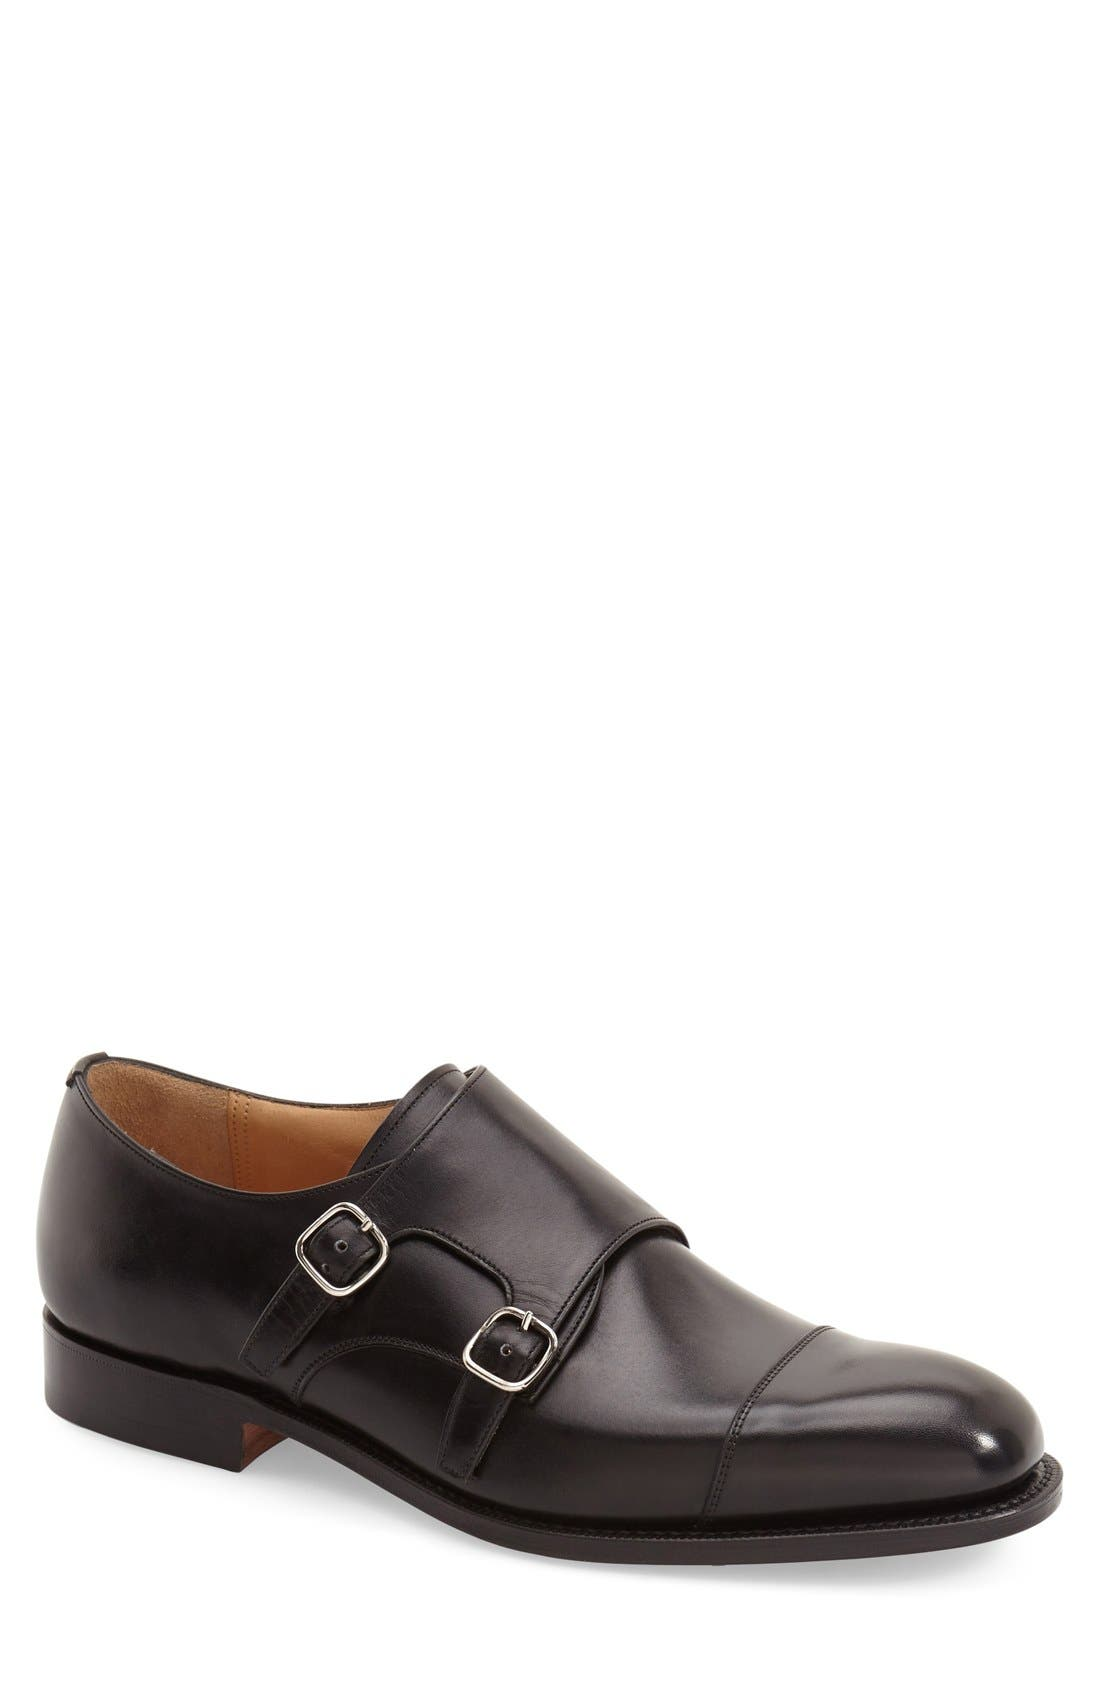 'Cowes' Double Monk Strap Shoe,                         Main,                         color, Black Leather